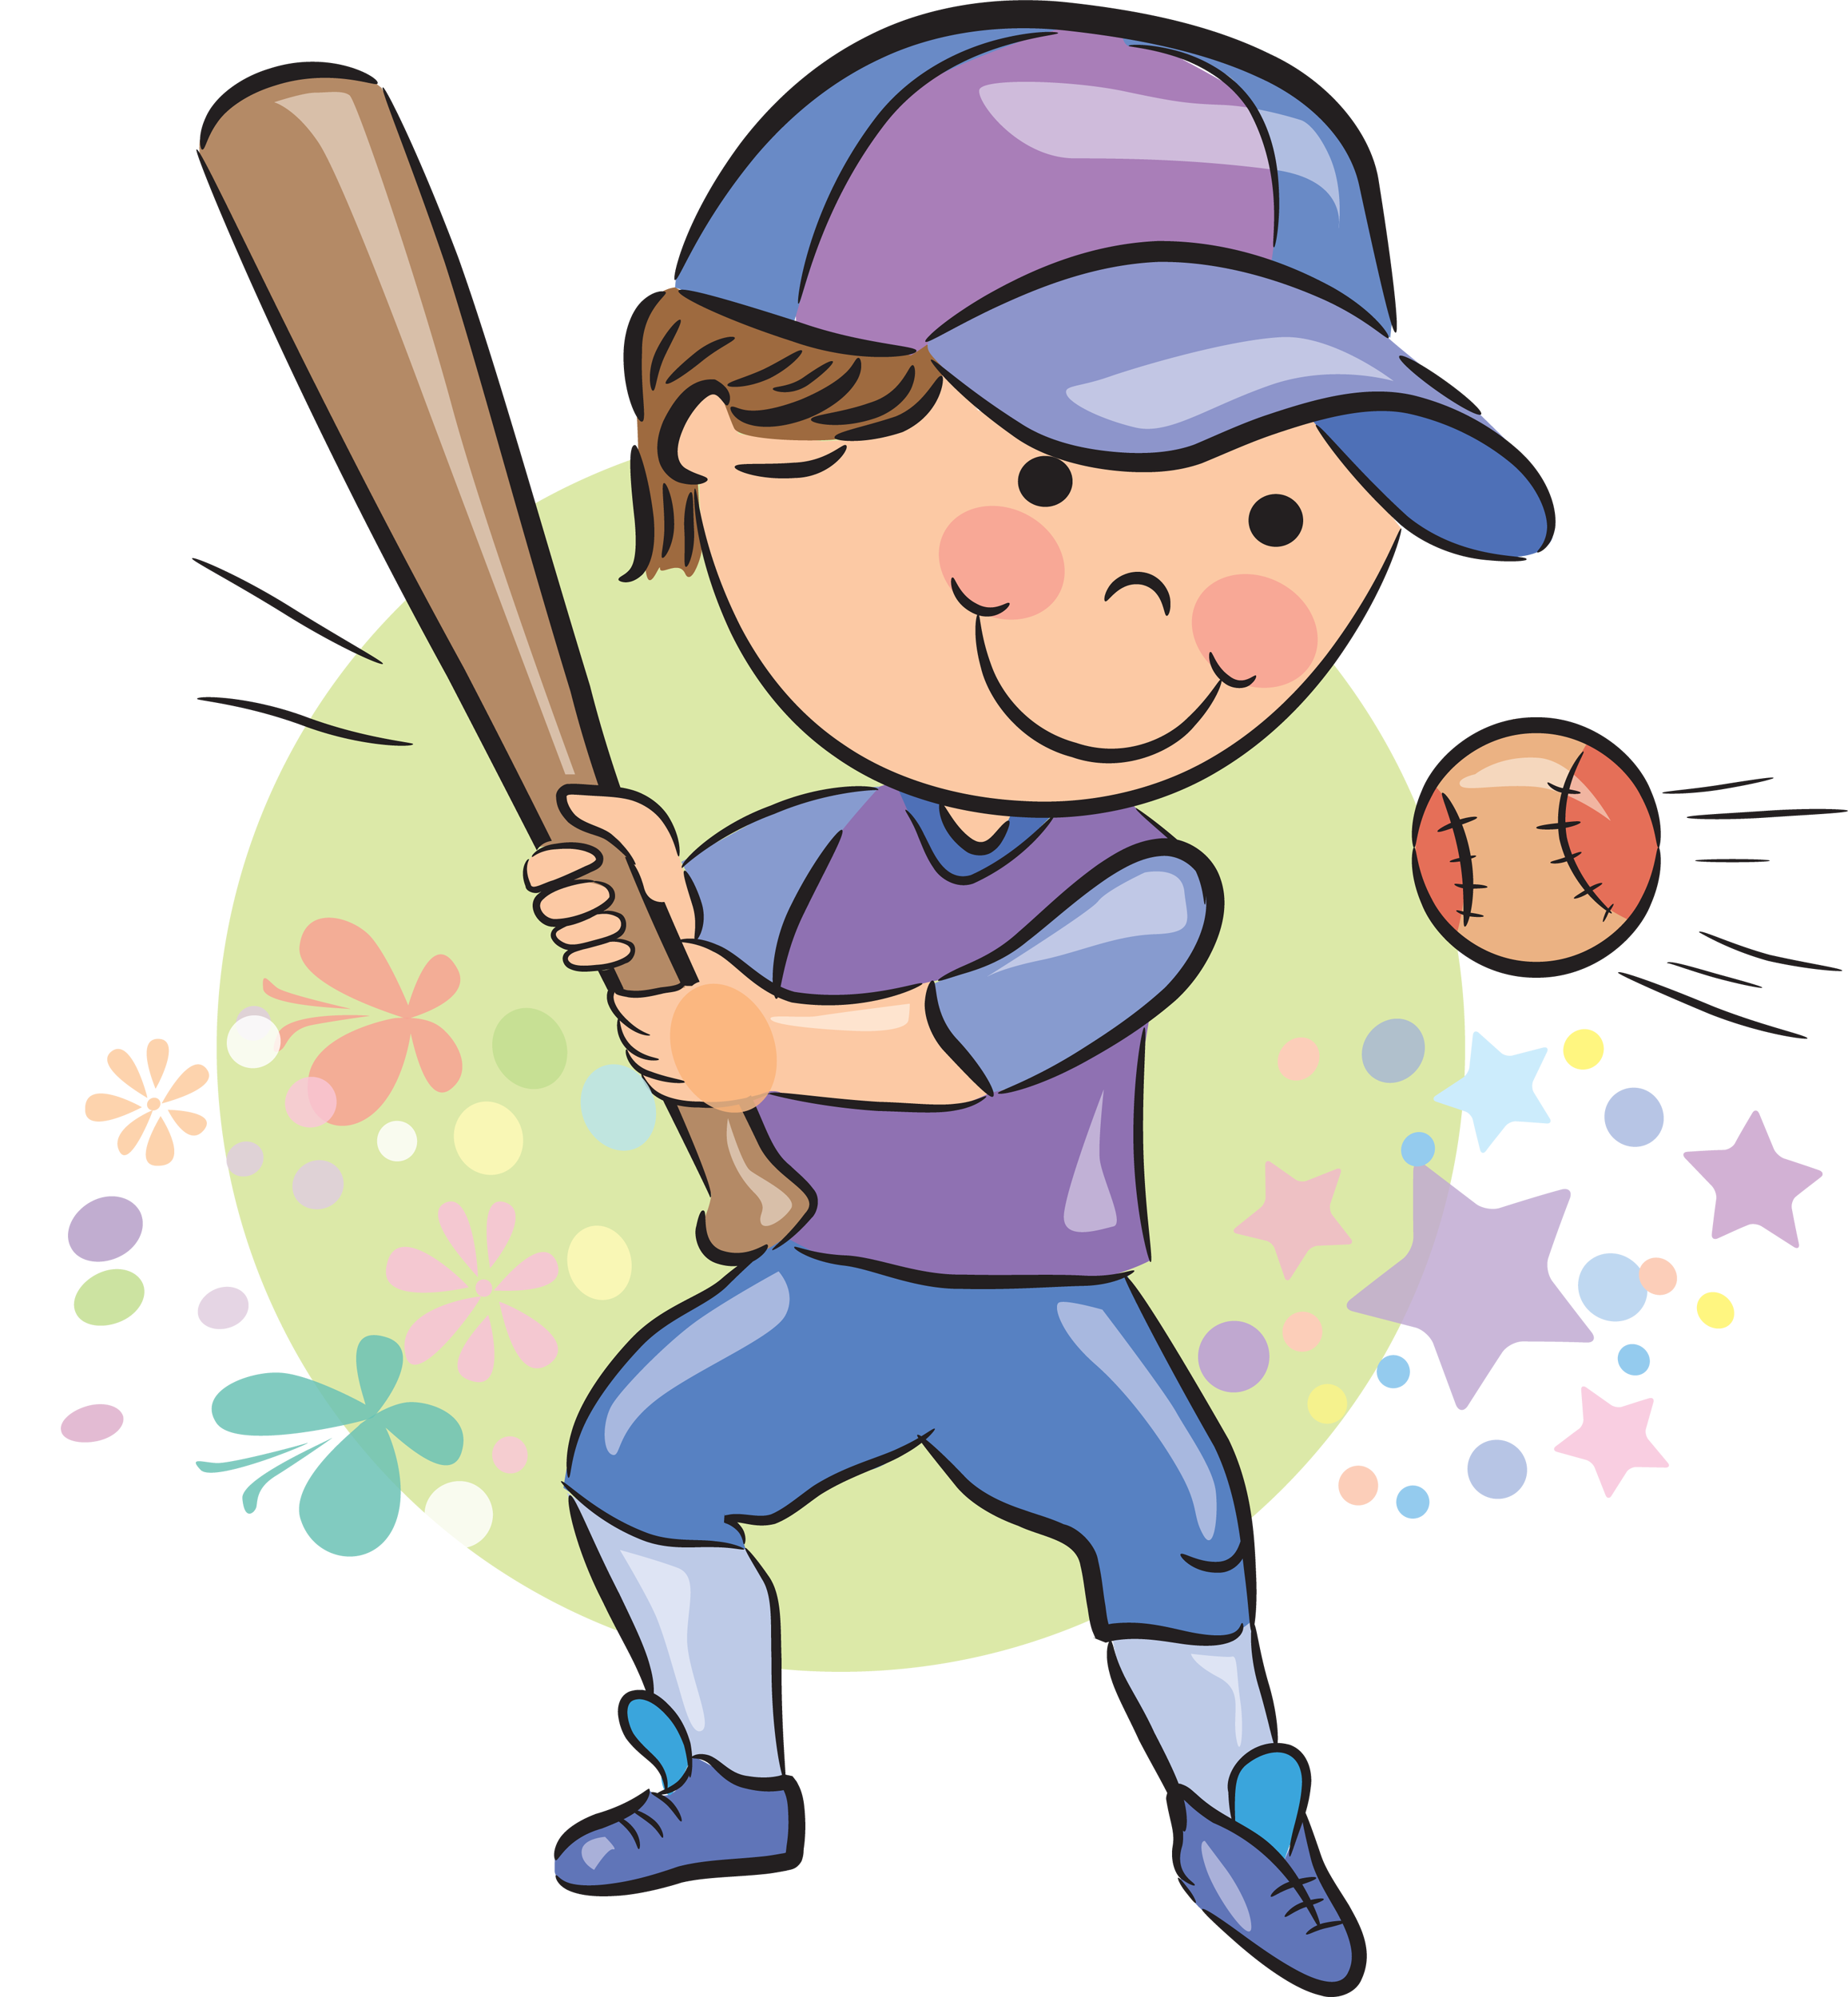 free sports clipart images - 650×650